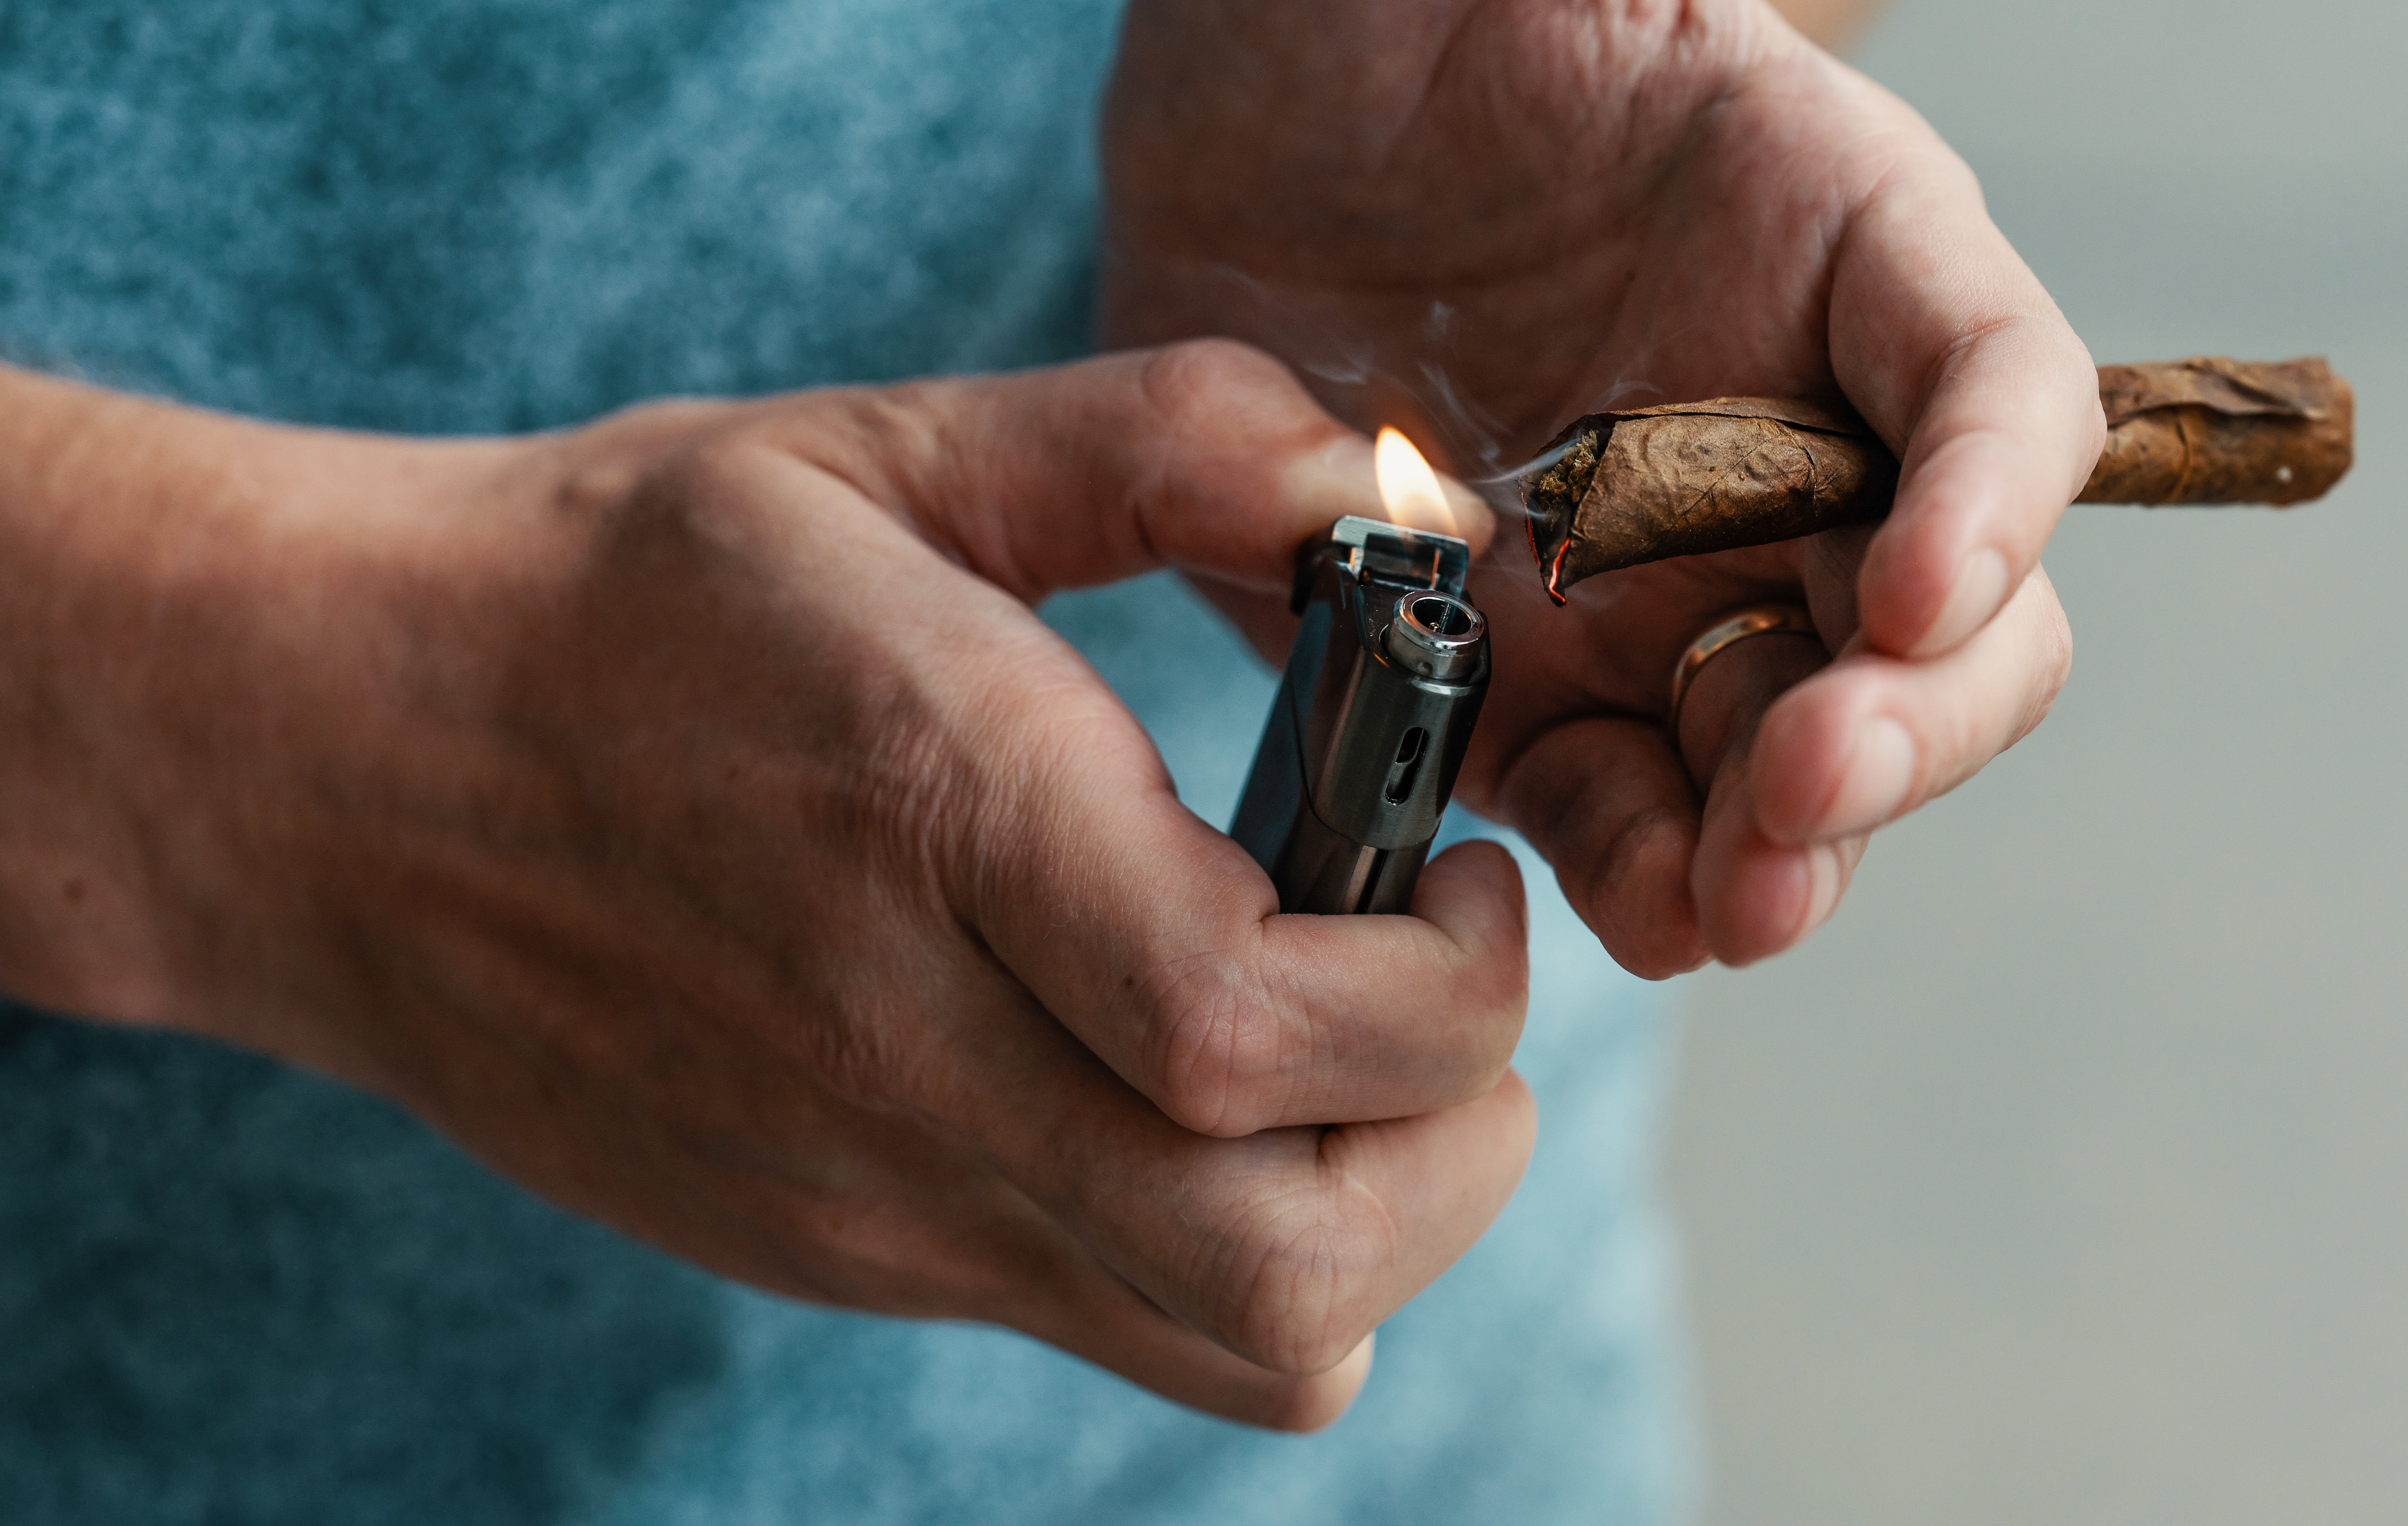 In this article, we feature the 10 best tobacco-free blunt wraps. Here, a man is shown lighting a blunt